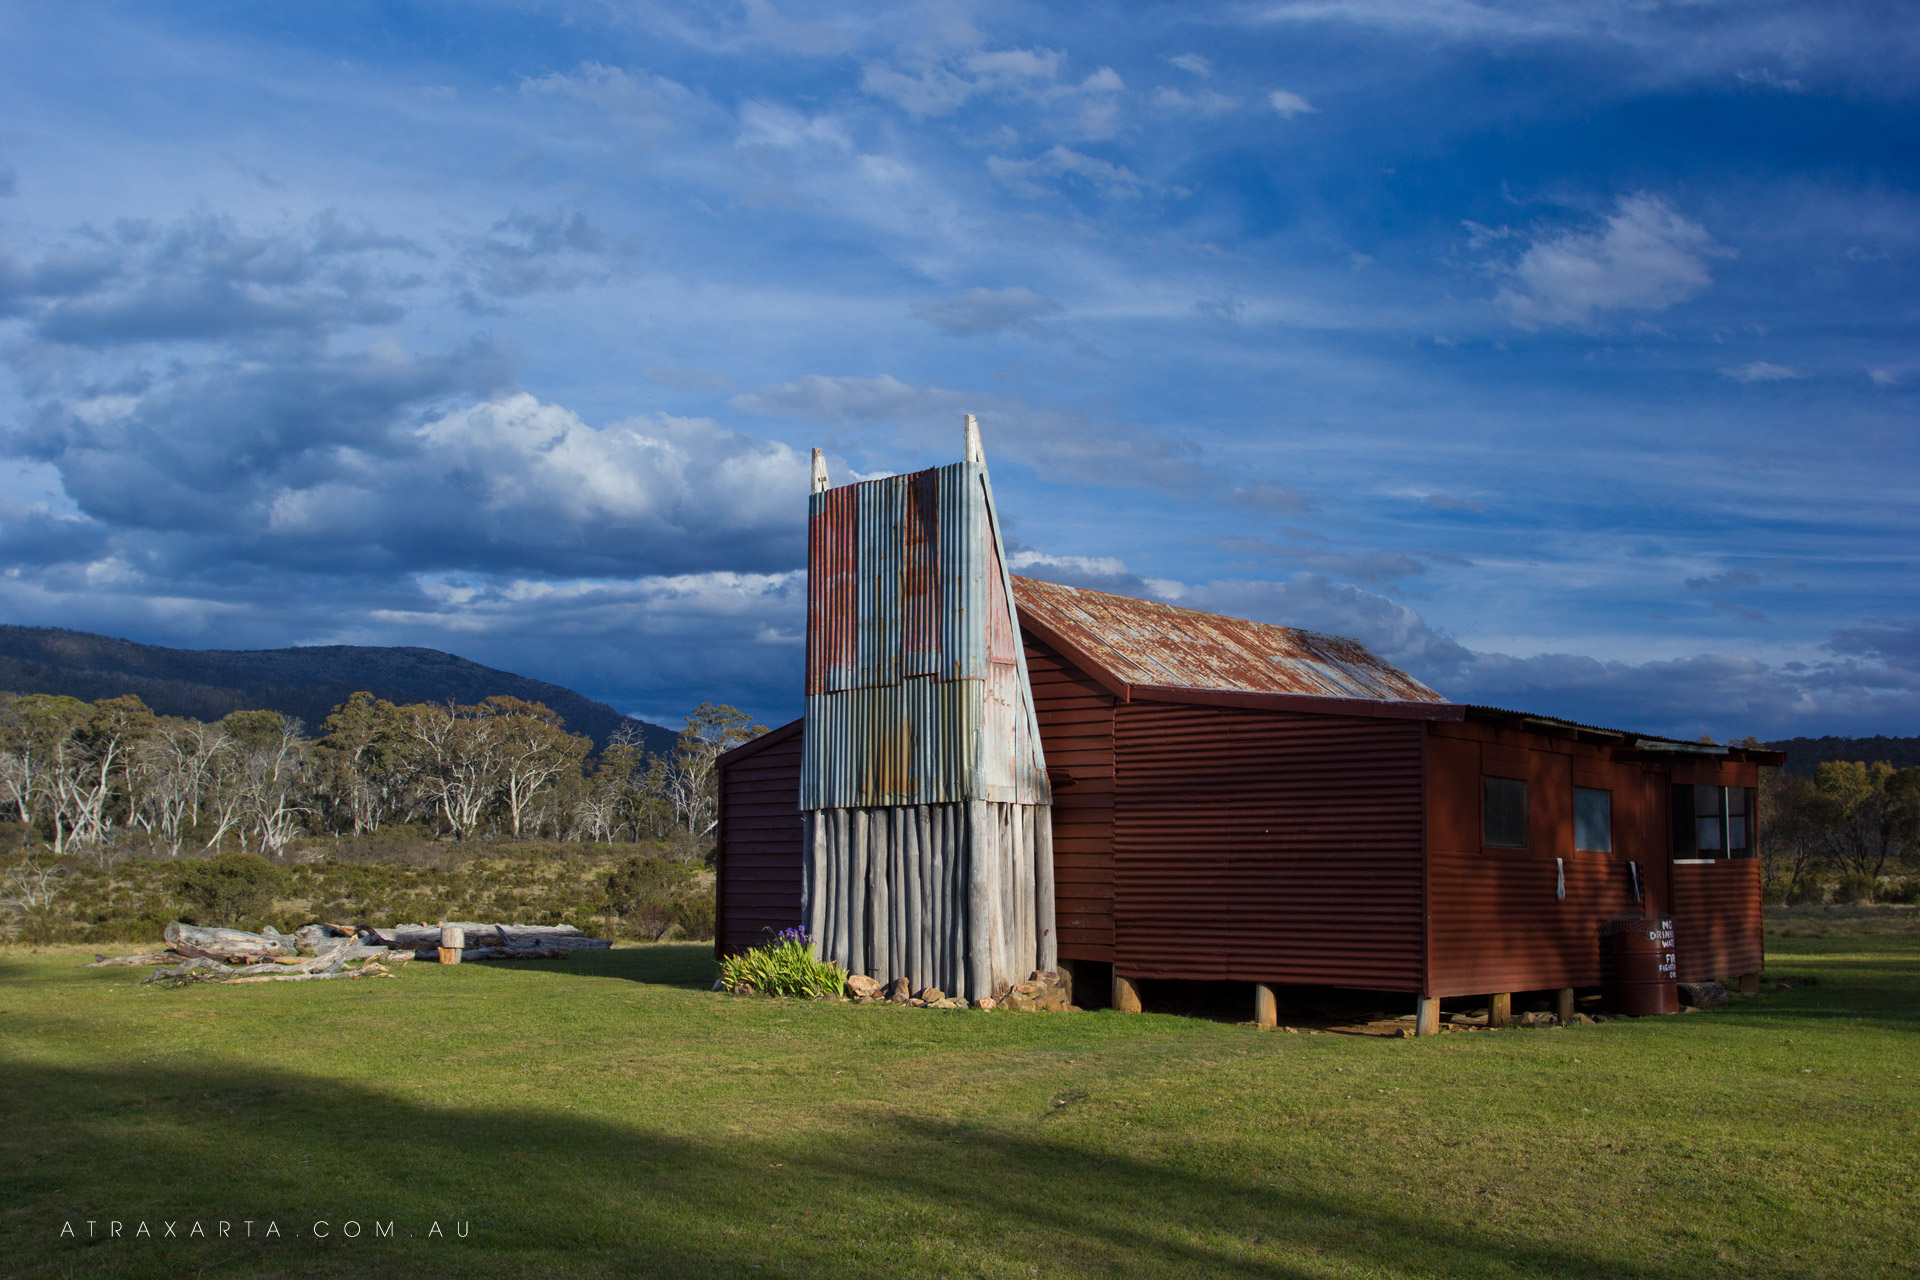 South of the Border, Pockets Hut, Kosciuszko National Park, NSW